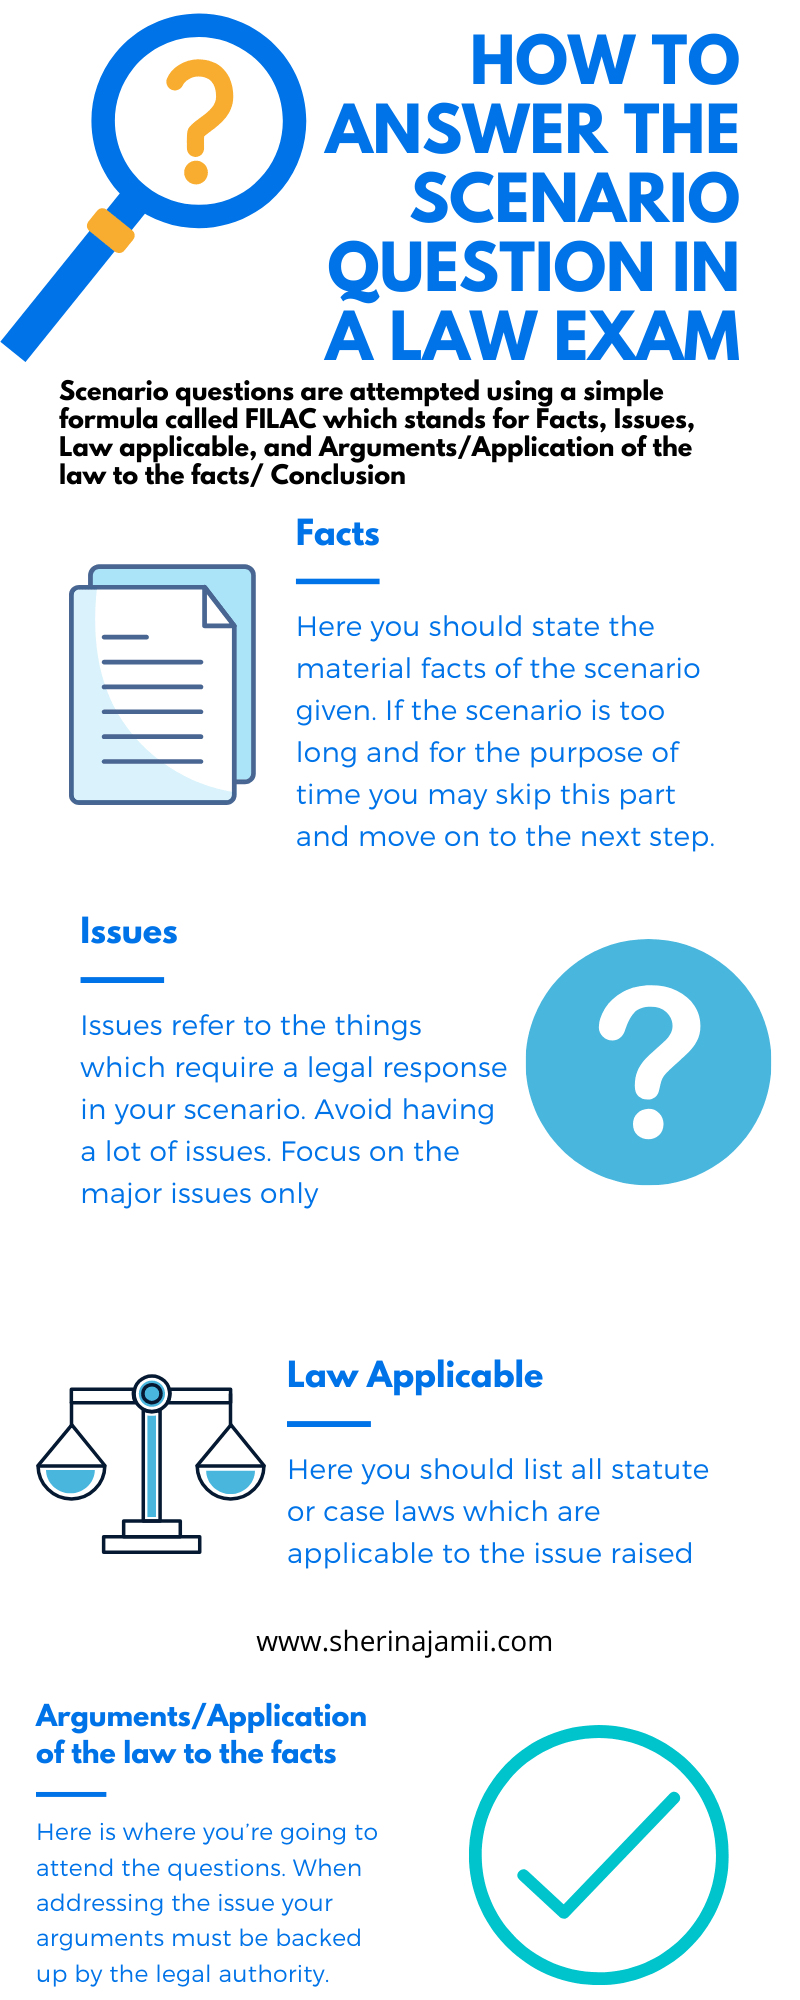 How to answer scenario/problem questions in law exams/bar exams